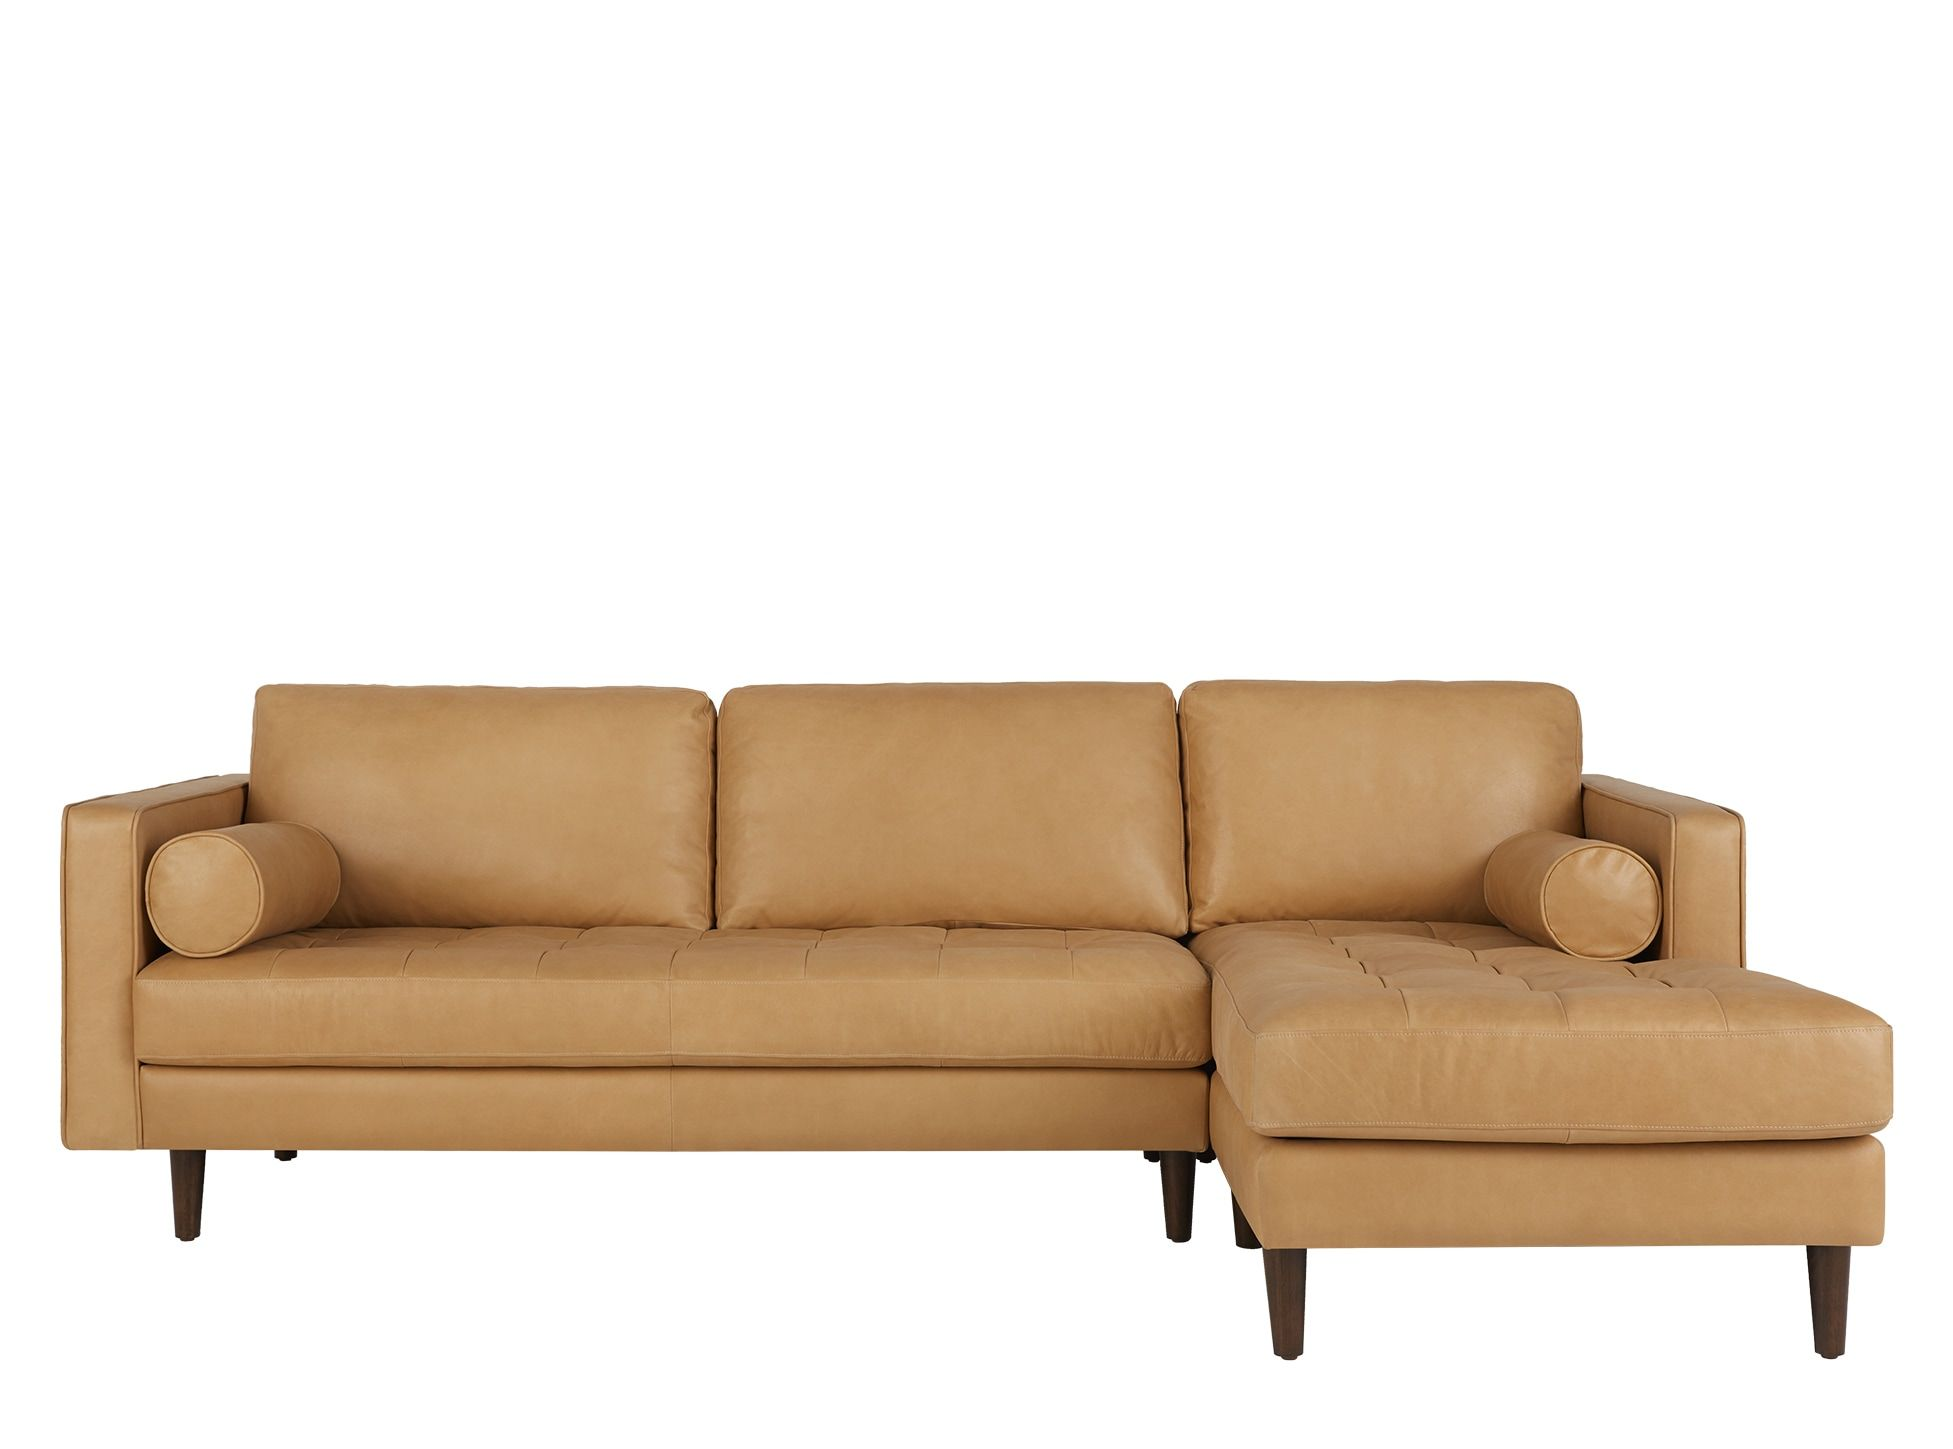 Scott 4 Seater Right Hand Facing Chaise End Corner Sofa Chalk Tan Premium Leather Canape Angle Canape Cuir Canape